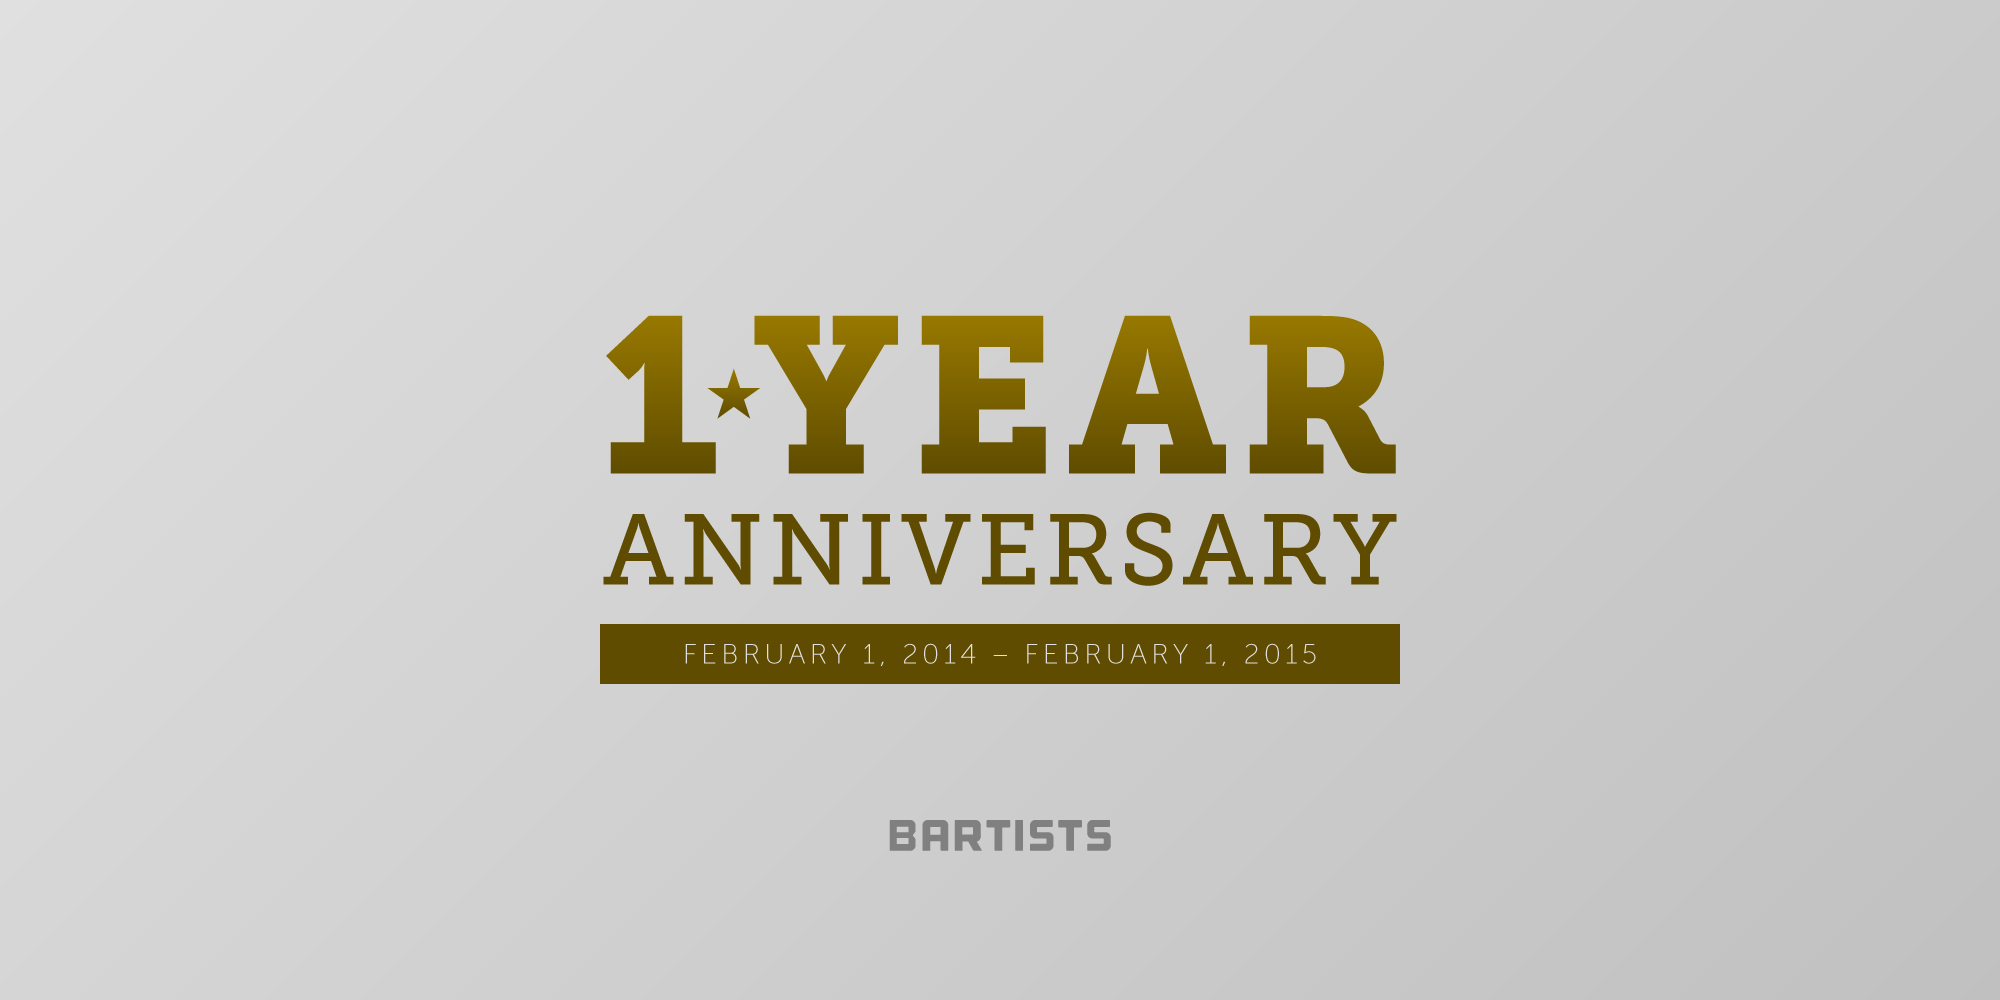 One Year Anniversary PNG - 167886